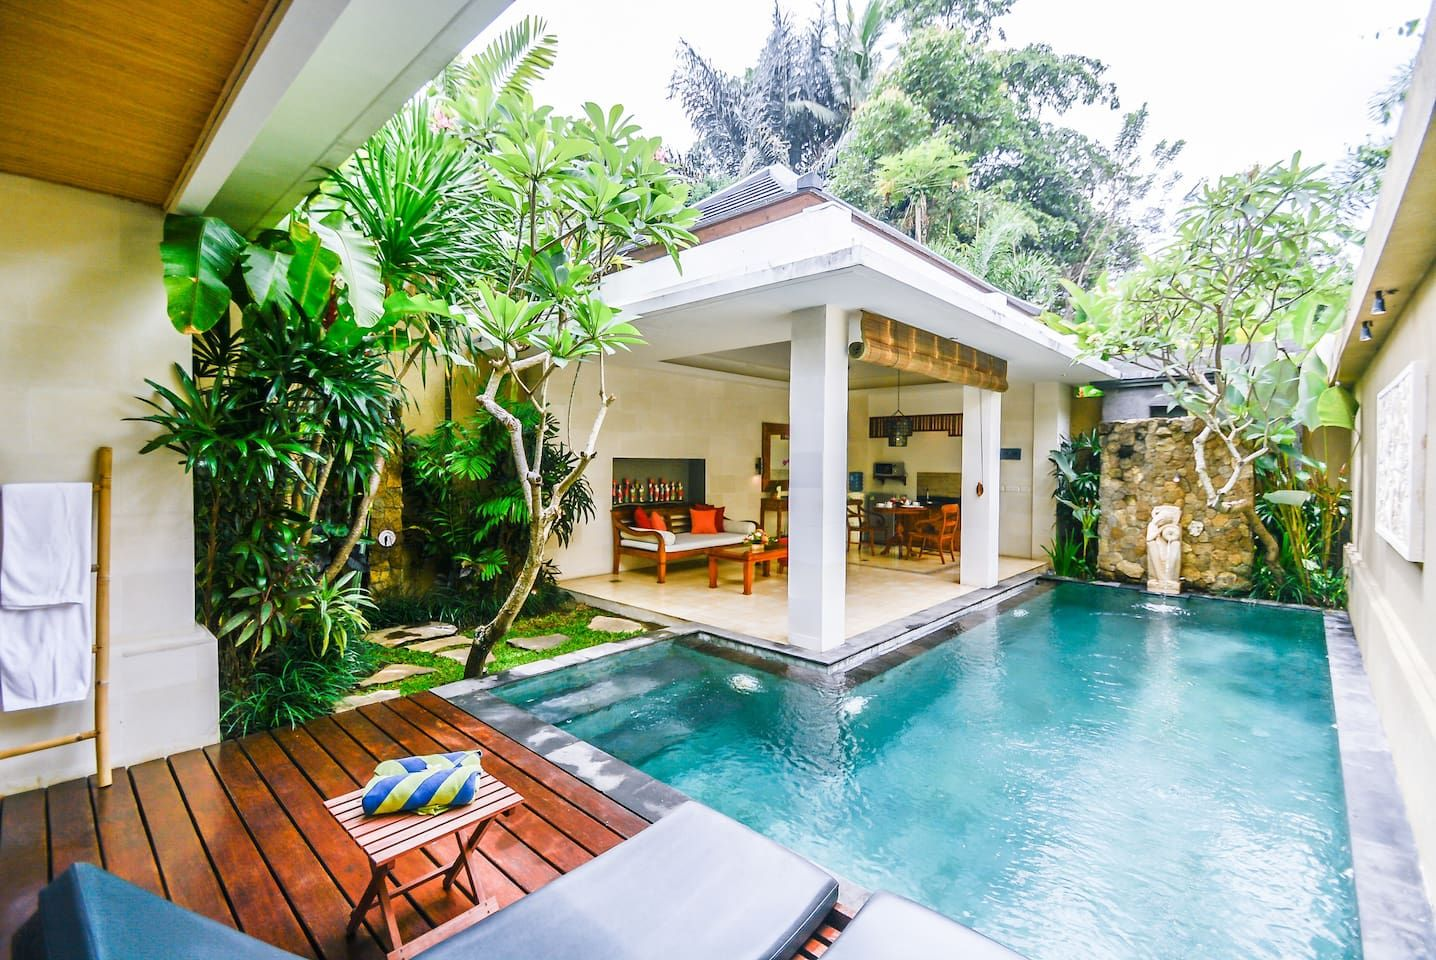 Holiday Villa With Private Pool In Ubud Villas For Rent In Ubud Villa With Private Pool Beach House Design Patio Plans